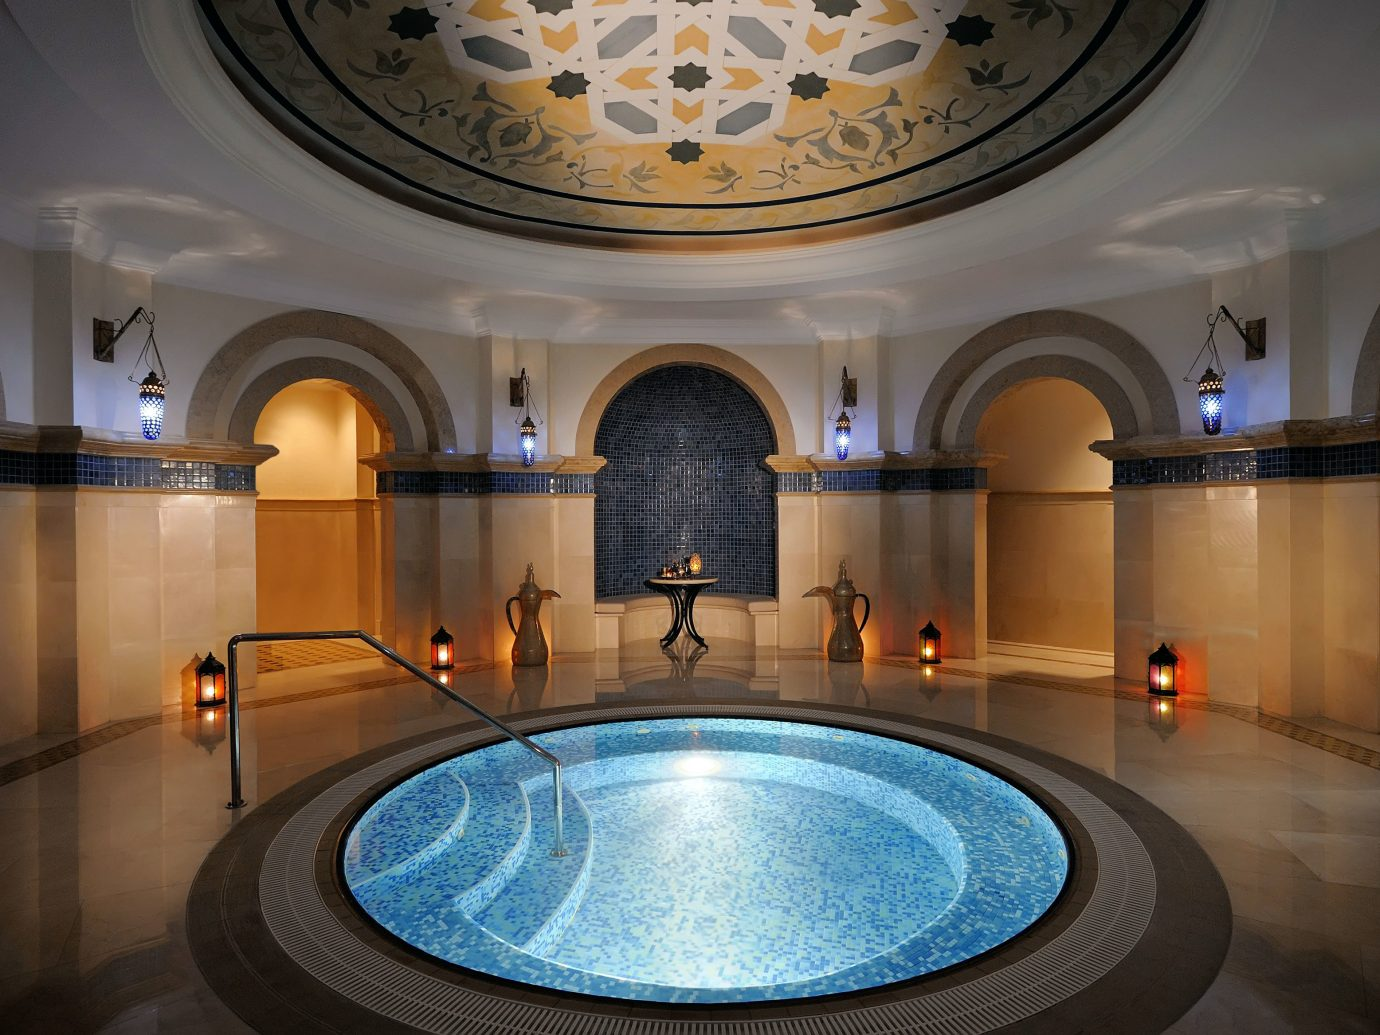 Dubai Elegant Hot tub Hot tub/Jacuzzi Hotels Lounge Luxury Luxury Travel Middle East Modern Patio Resort Terrace indoor wall swimming pool estate mansion Lobby ballroom